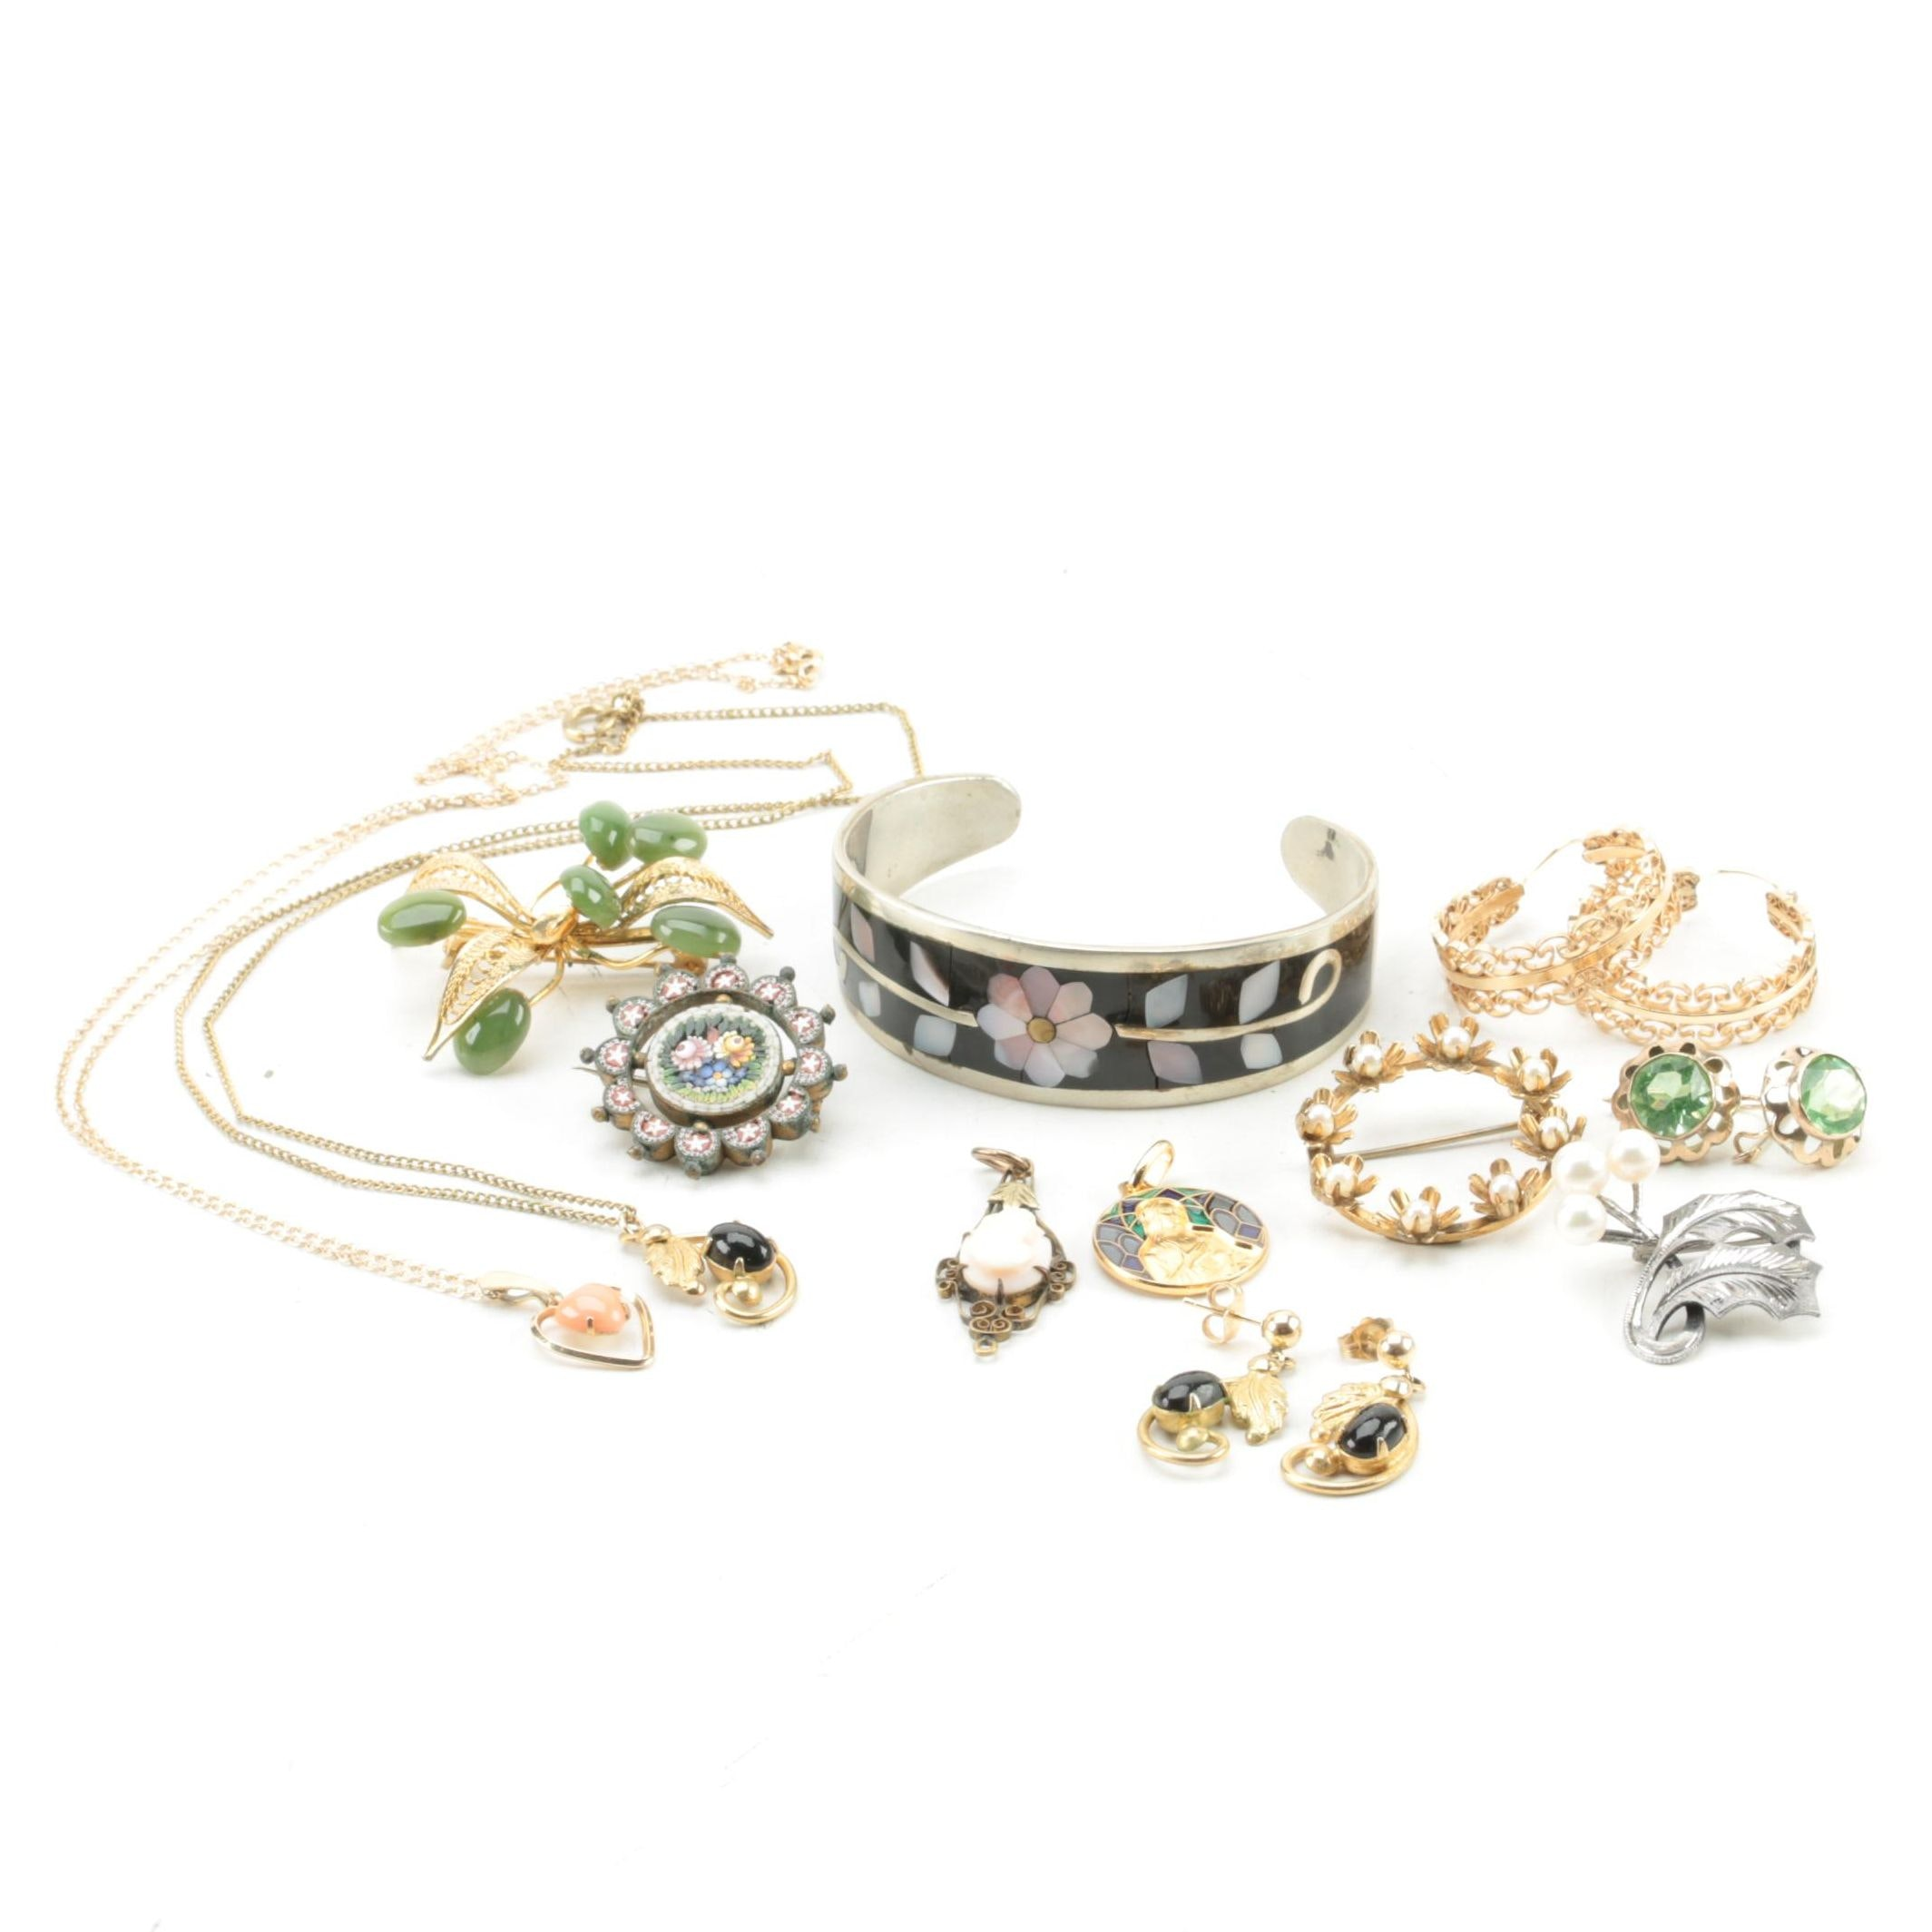 Collection of Costume Jewelry Including a Sterling Brooch and 14K Gold Findings